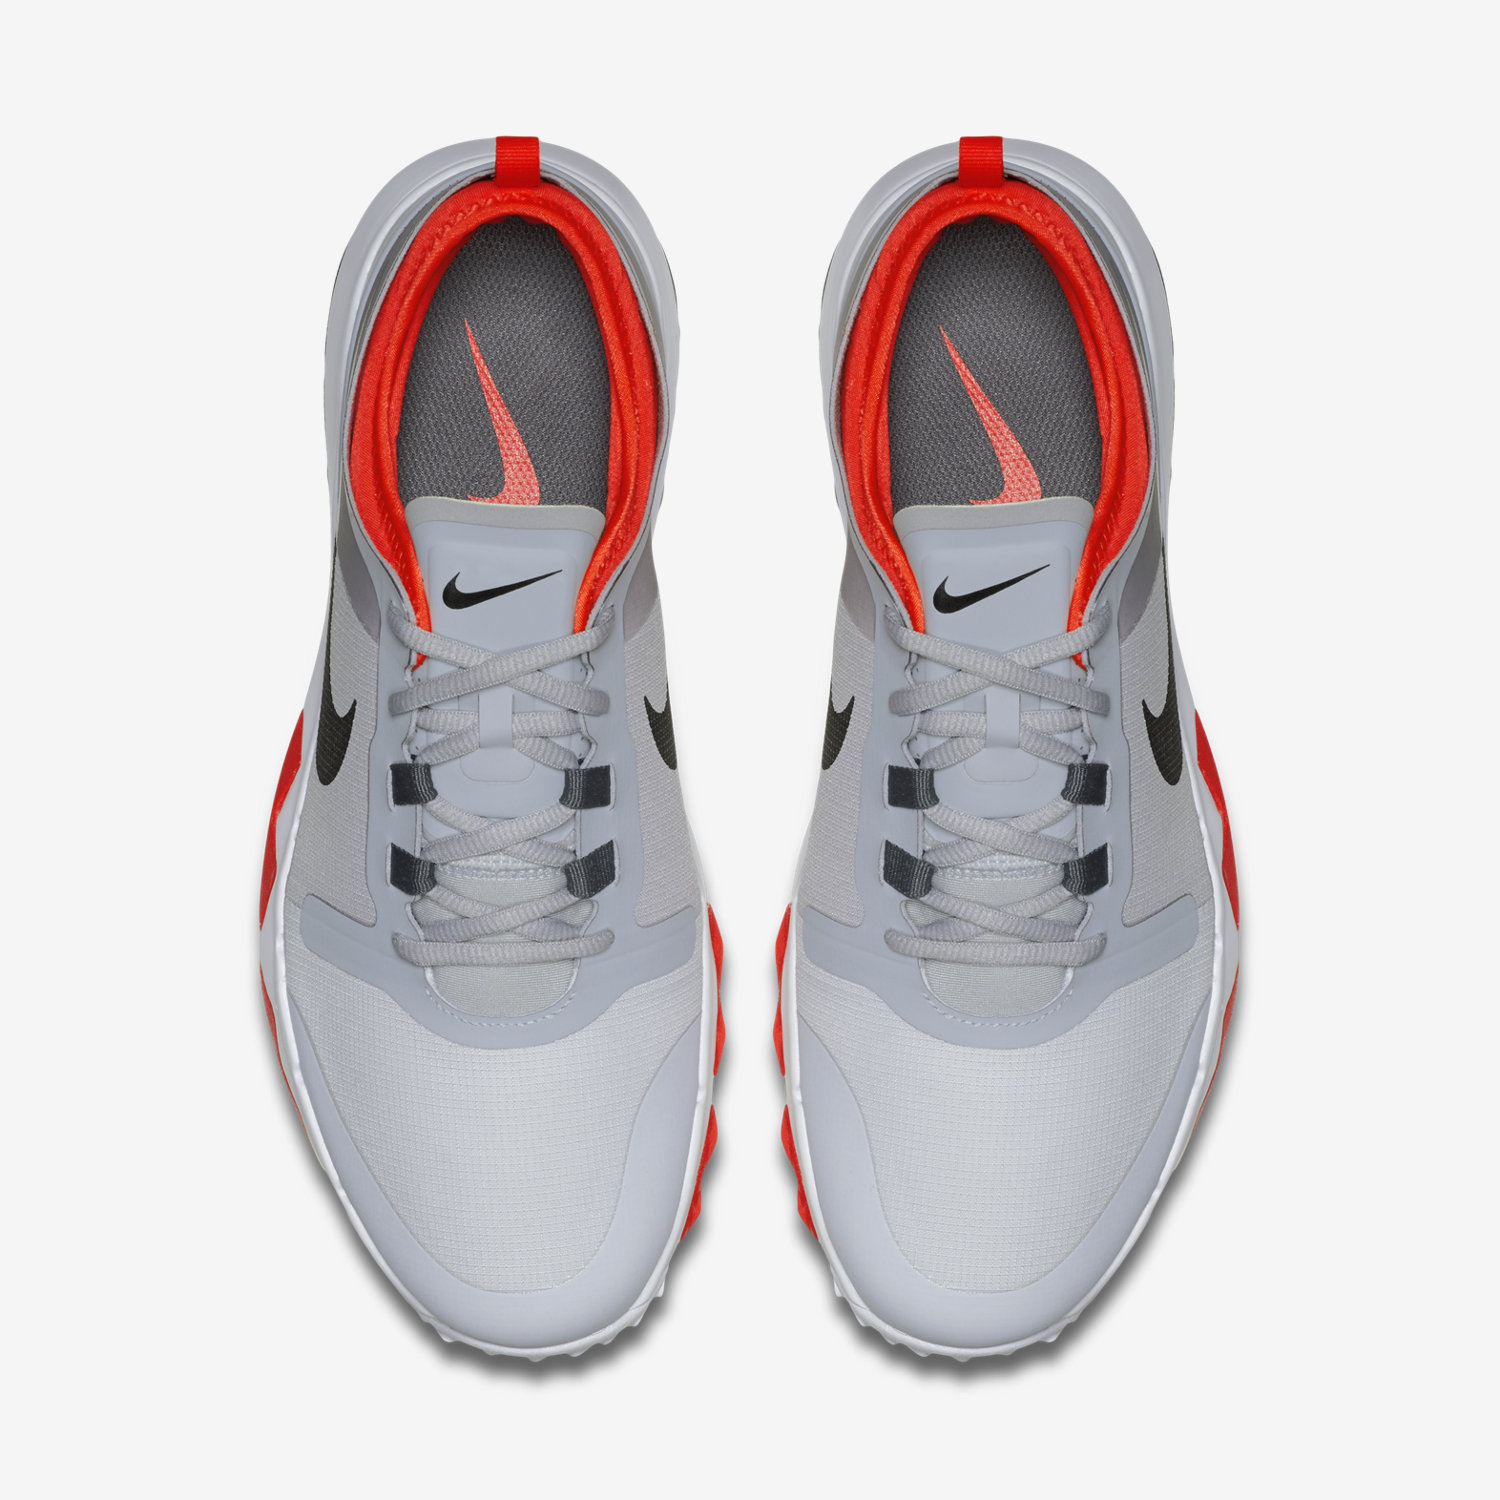 5c0f1a3917fb9 ... Nike FI Impact 2 Mens Golf Shoe. Nike.com UK ...